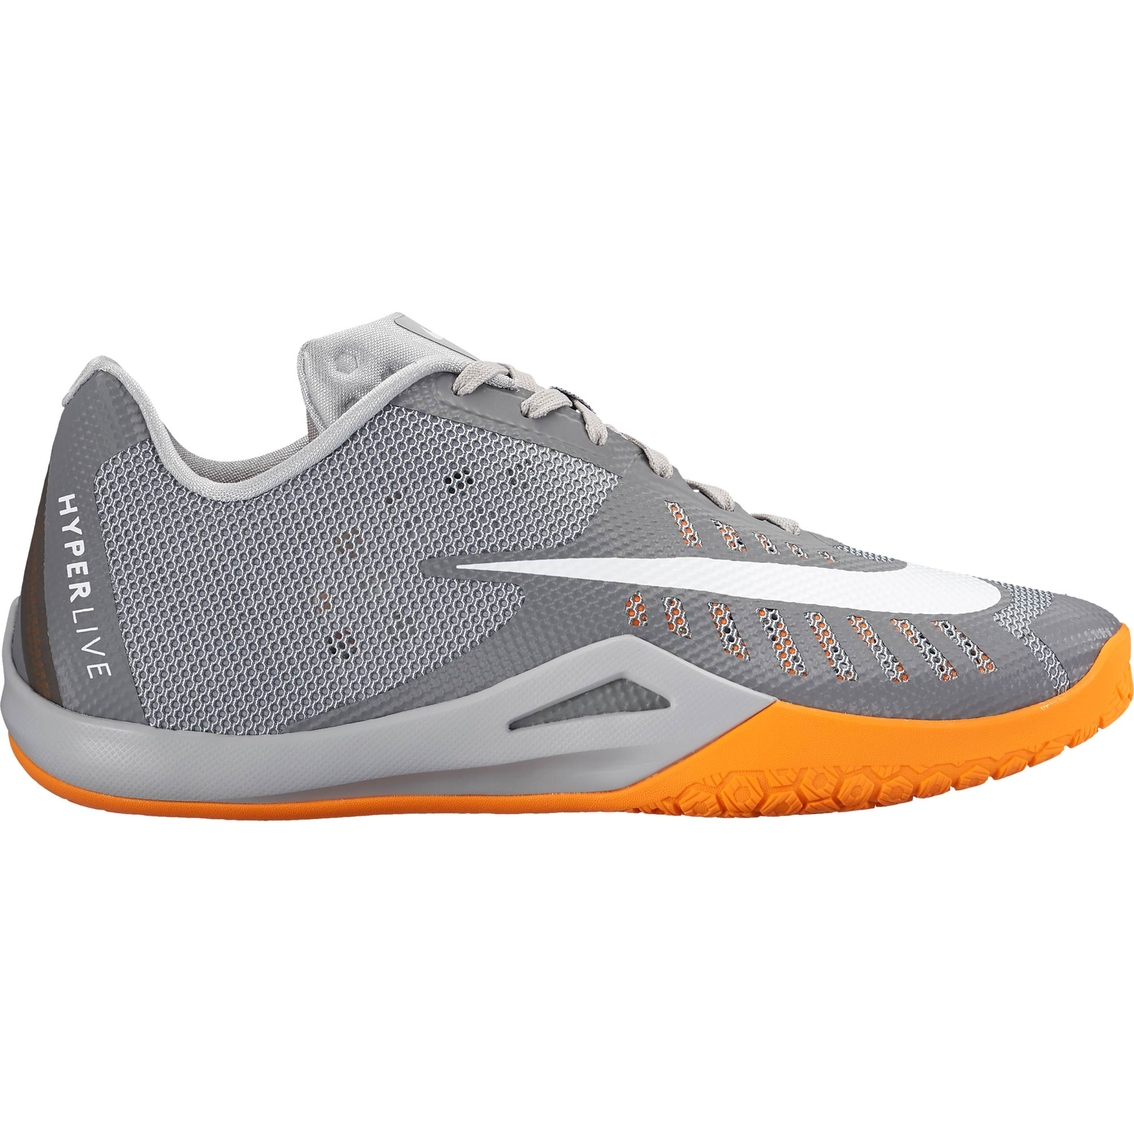 b566f056fbd Nike Men s Hyperlive Basketball Shoes